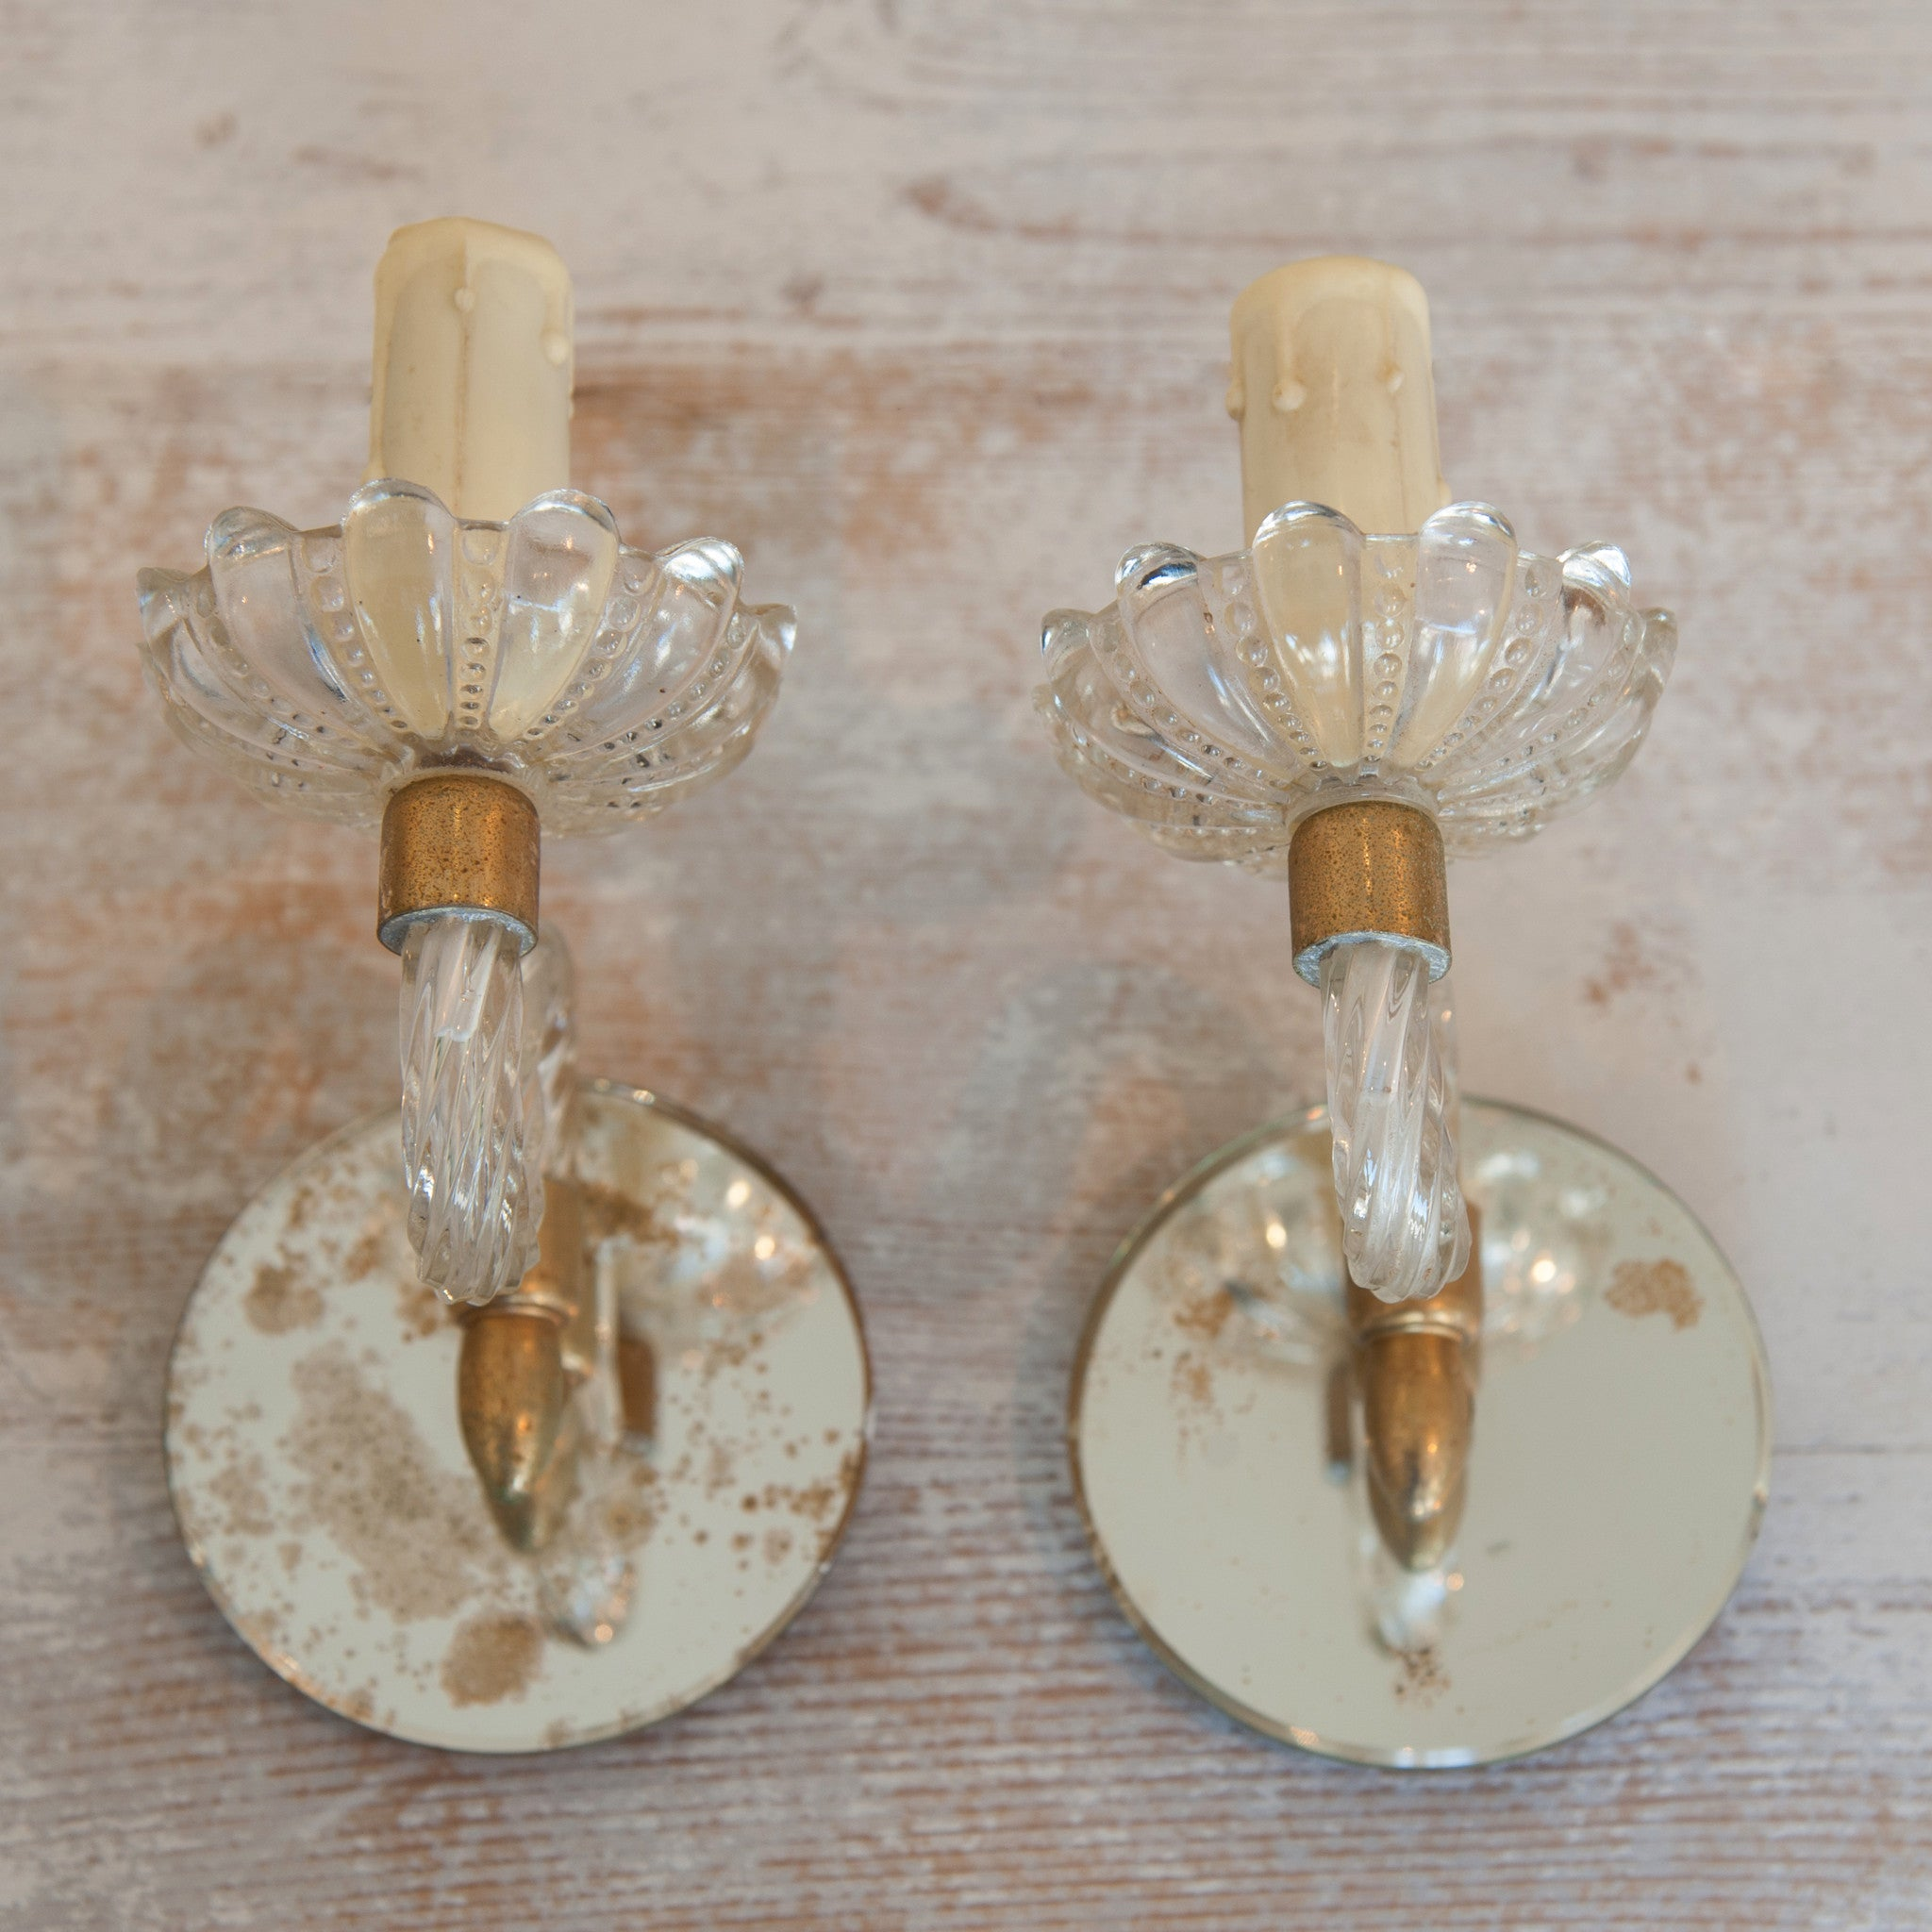 pin candle mirror holder champagne sconce sconces mirrored wall